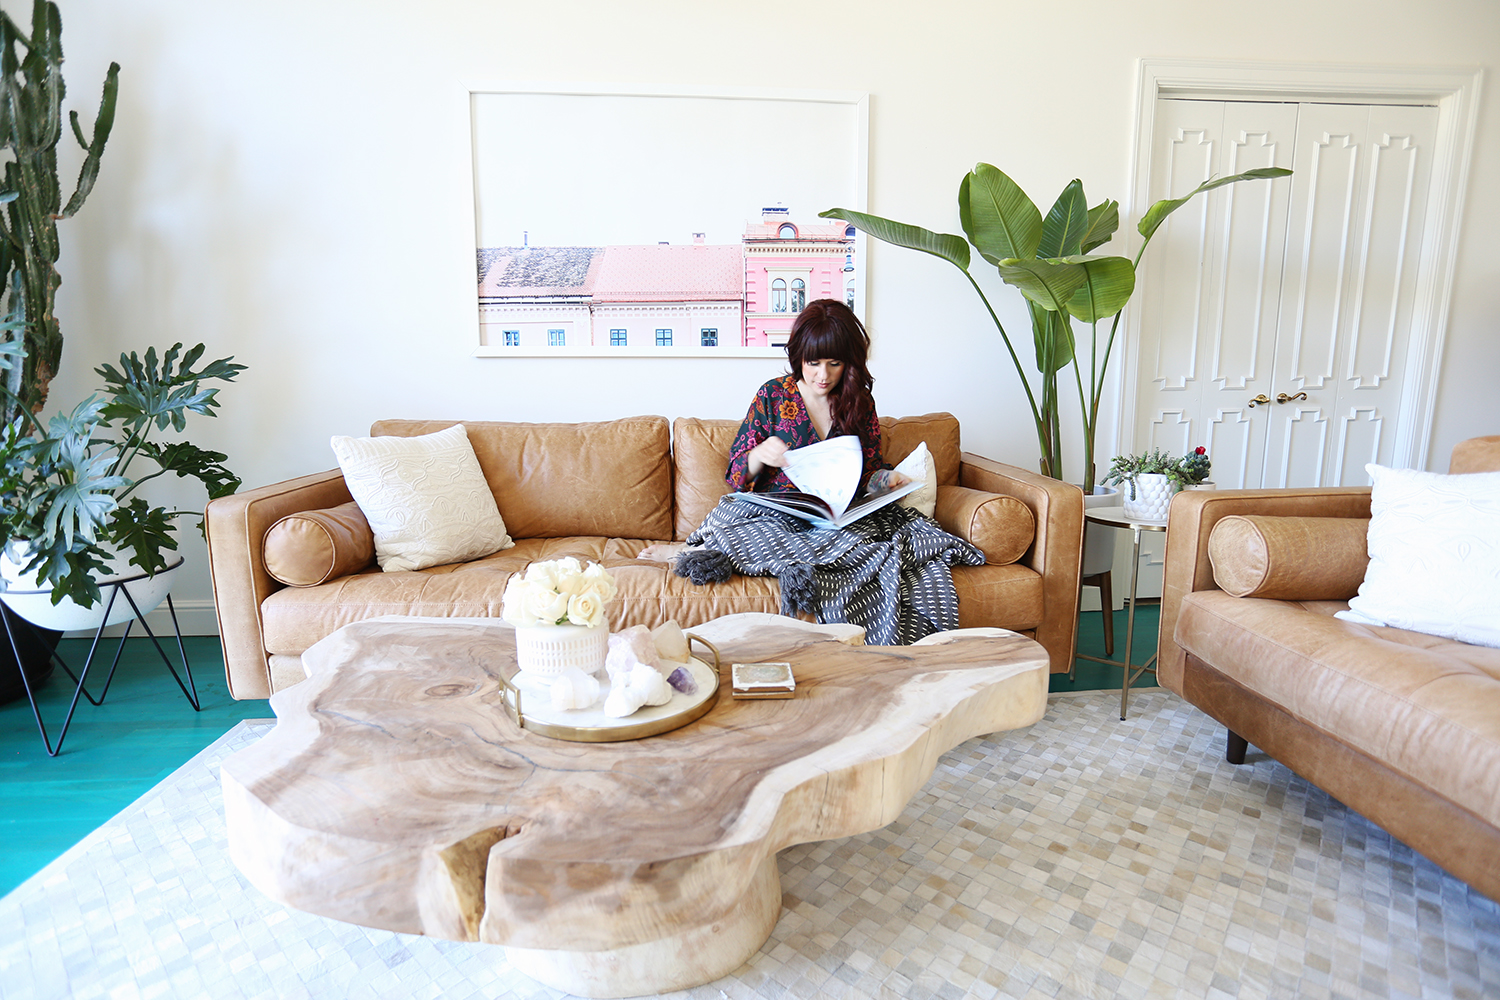 Perfect Elsie Larsonu0027s Living Room Tour Elsie Larsonu0027s Living Room Tour ...